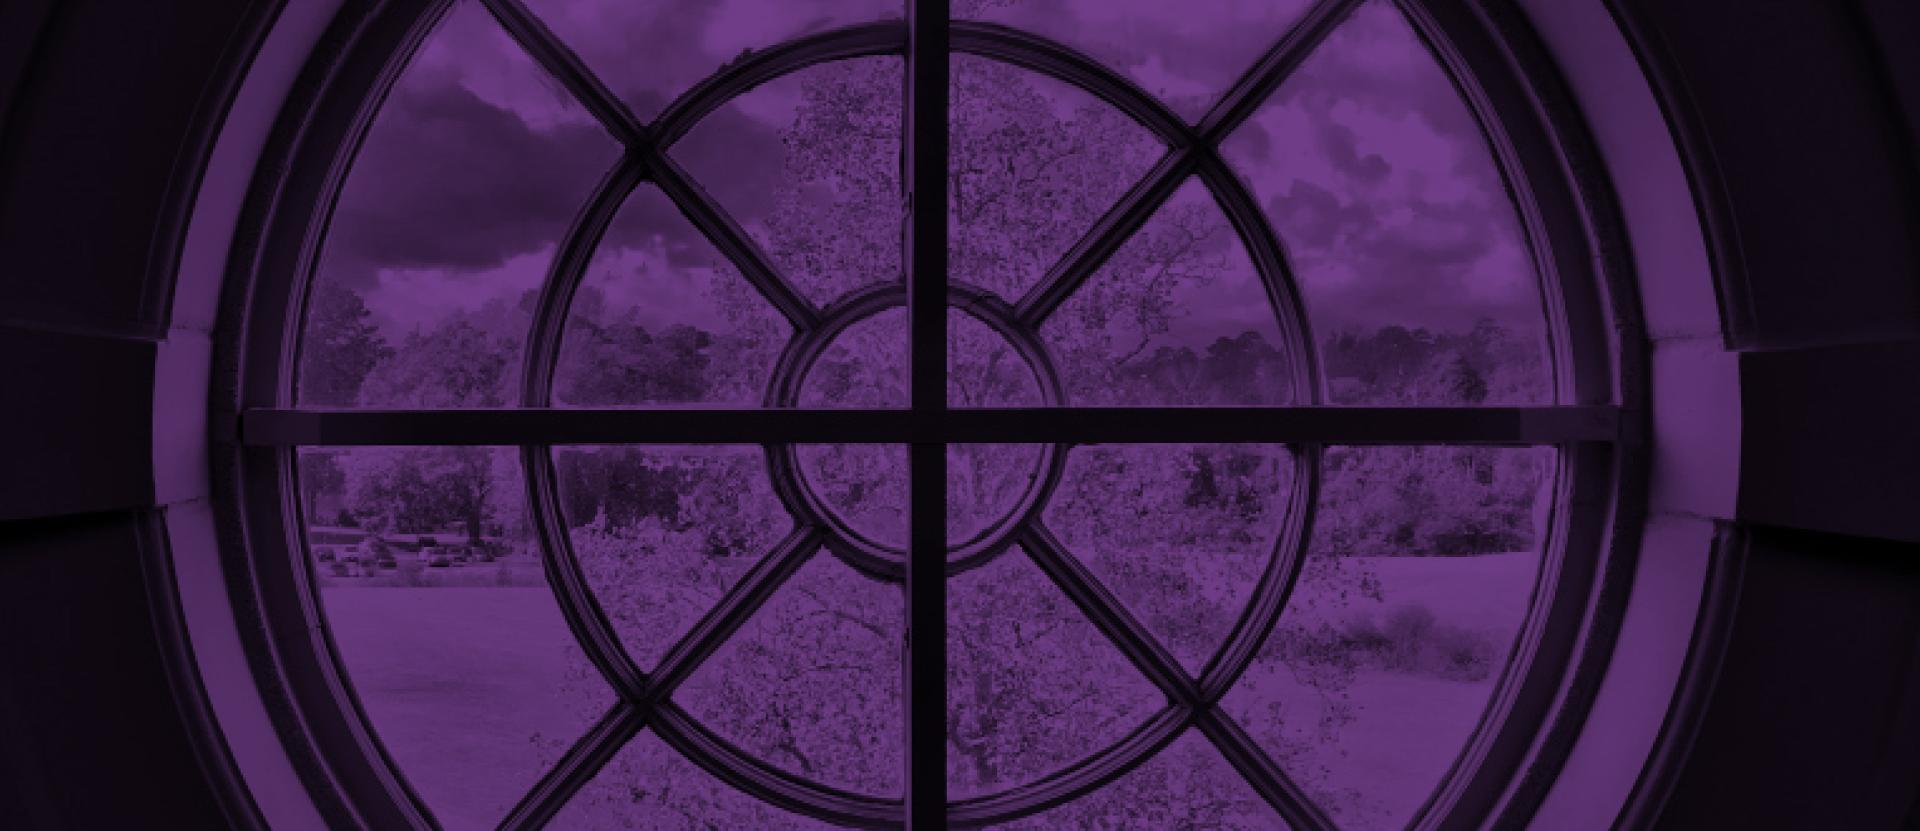 Library window with purple overlay